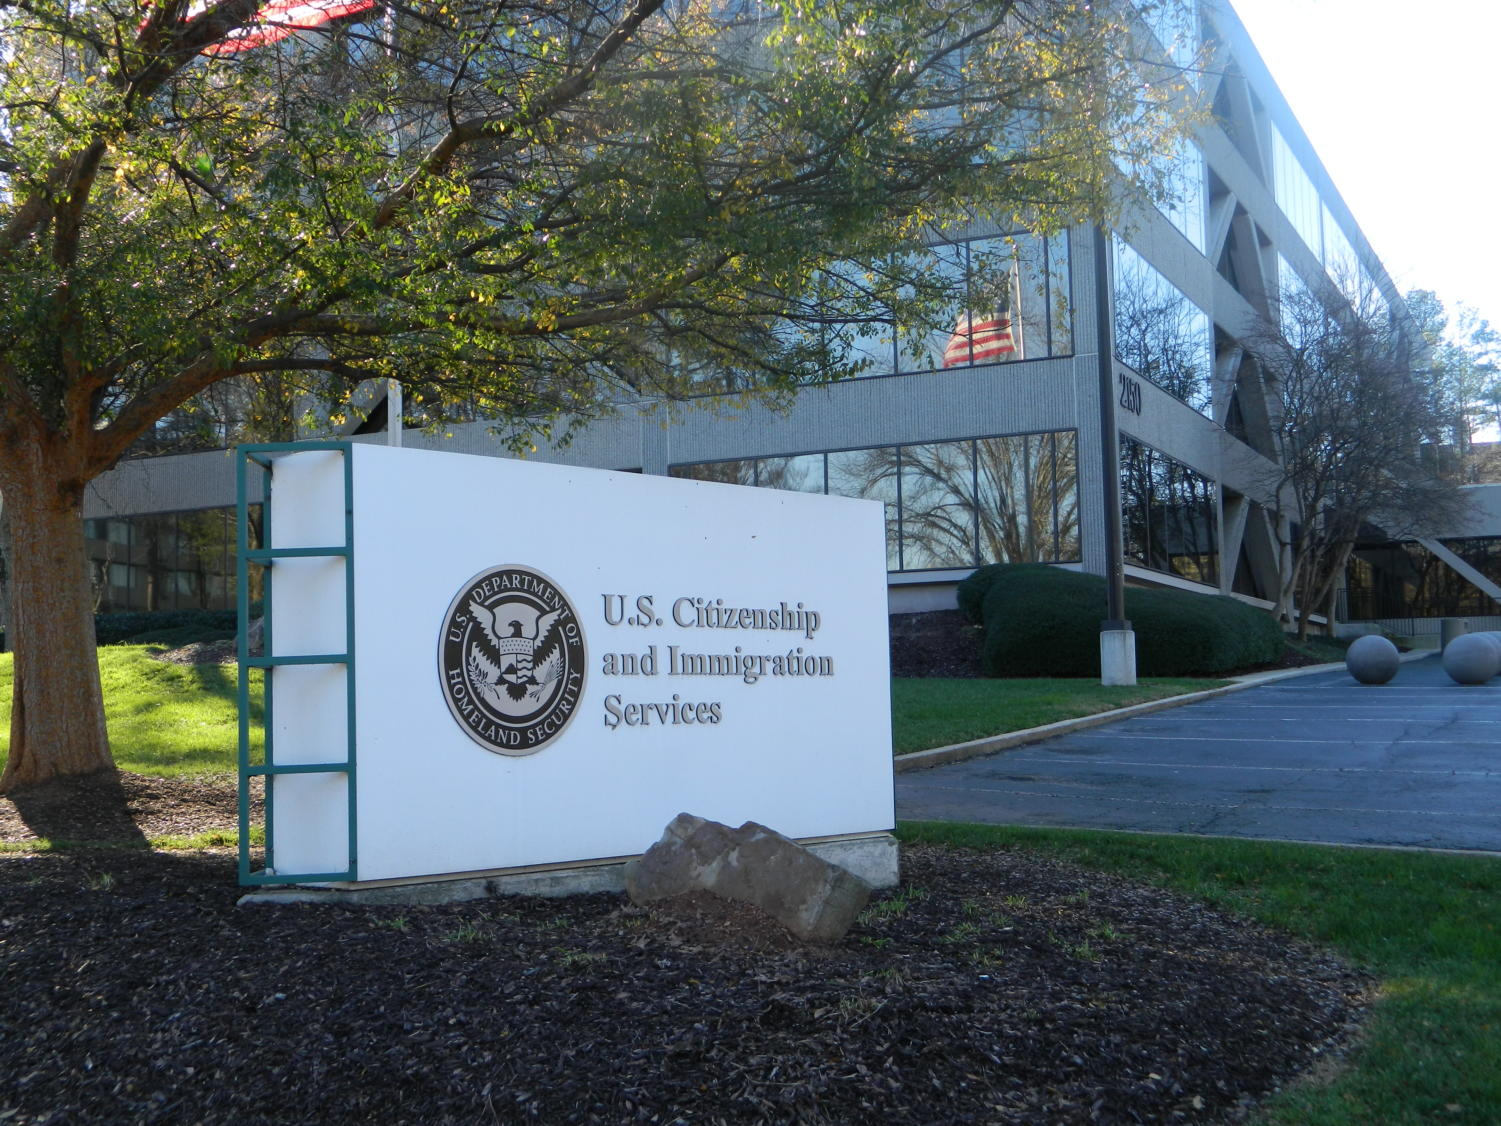 The U.S. Citizenship and Immigration Services — an agency of the Department of Homeland Security — has an office located in Atlanta. The department recently added stipulations which will prevent immigrants who rely on government assistance from obtaining green cards.